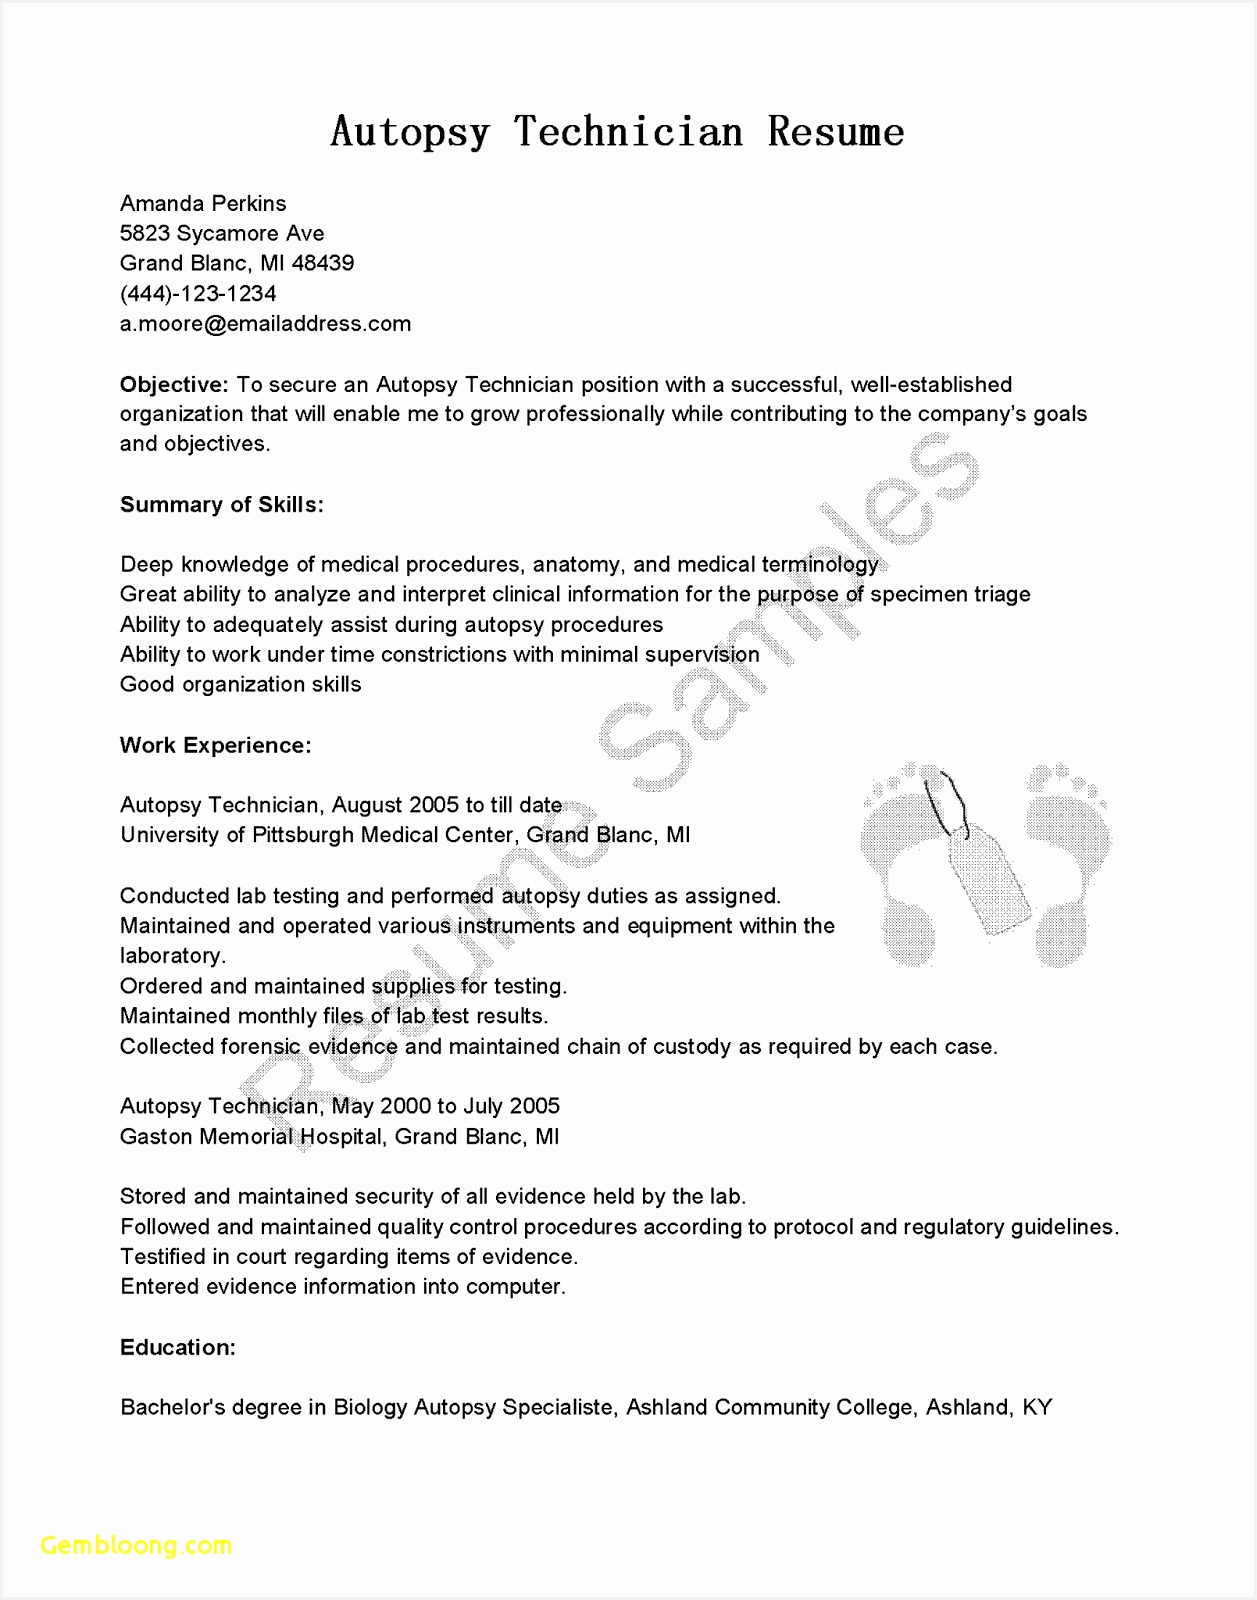 Fresh Word Resume Samples Download Executive Resume Templates Word Od Resume Outline Word Fresh Word16001257